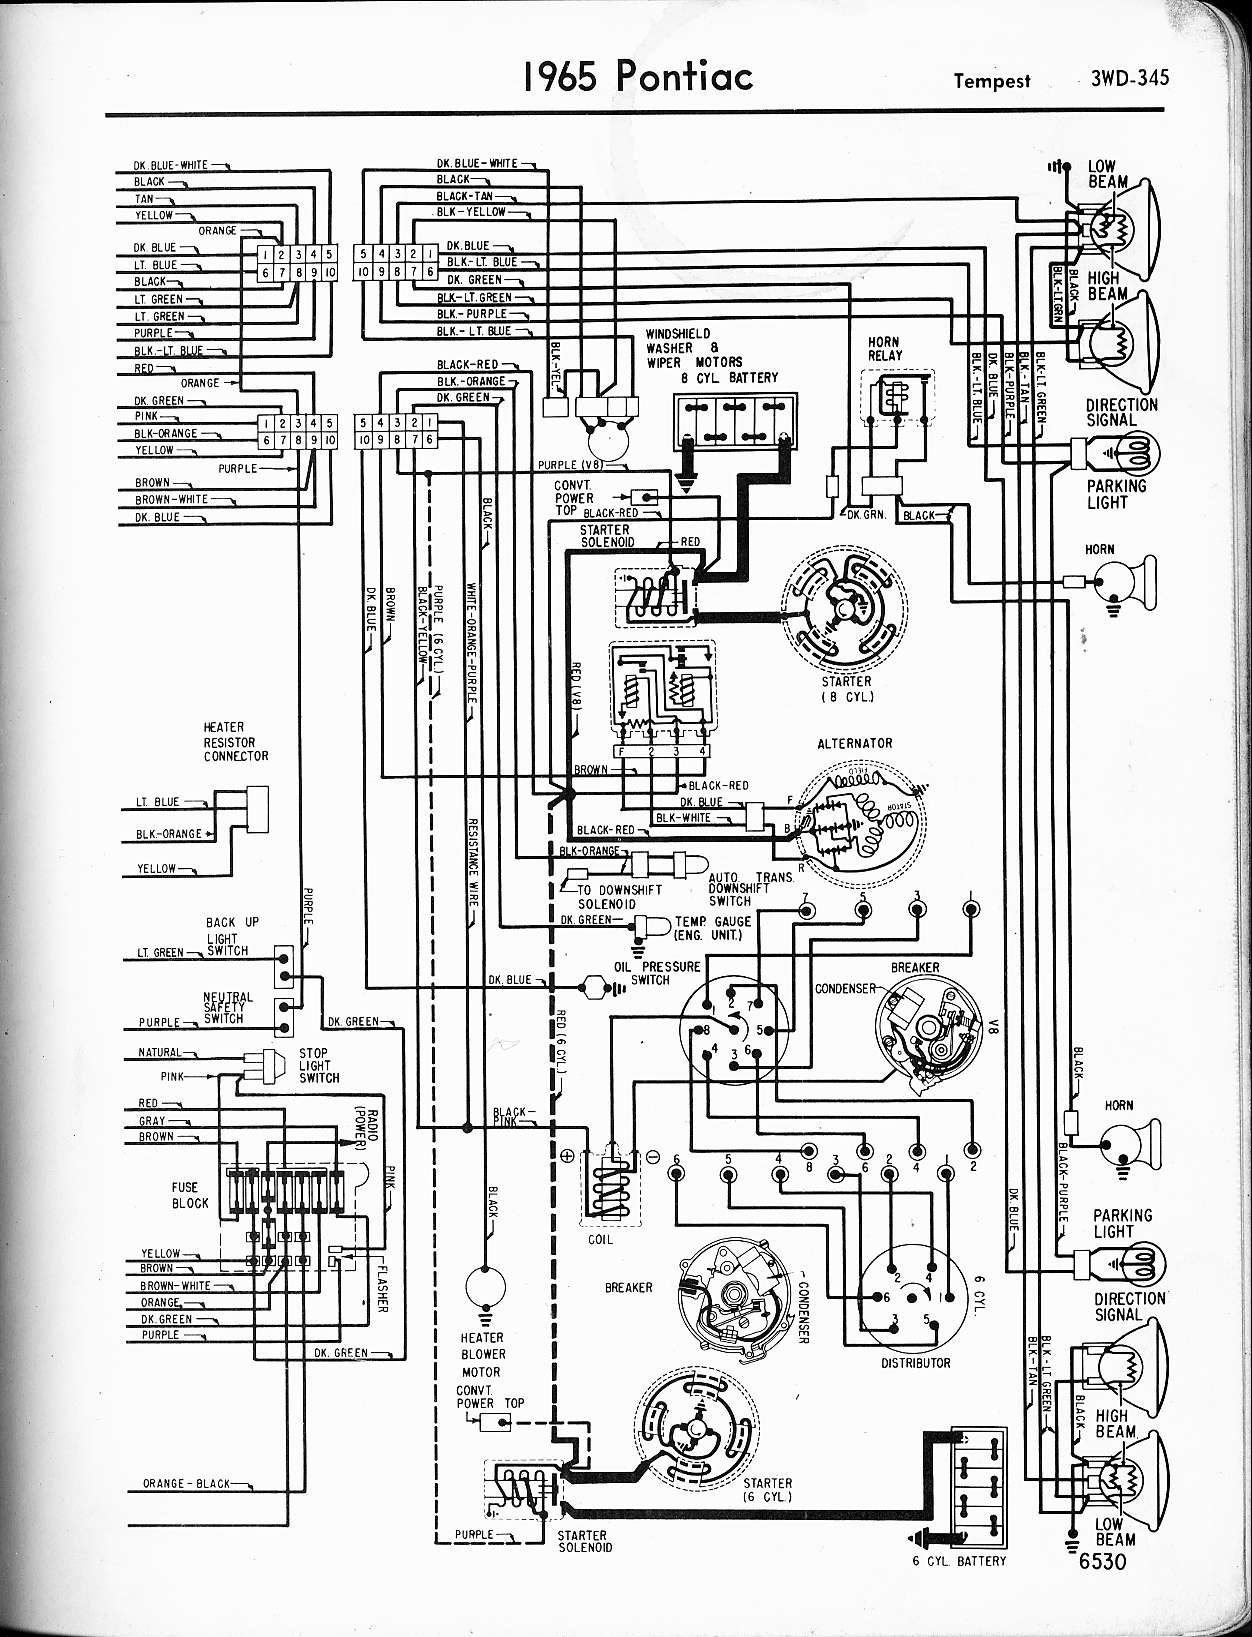 68 Gto Fuse Box Diagram in addition Steering Column Repair 1979 Corvette Tilttelescopic Tilt also 1967 Camaro Wiring Diagram Pdf likewise 95 Lt1 Opti Spark Vacuum Lines 880227 moreover 68tilt. on 1969 firebird wiring diagram